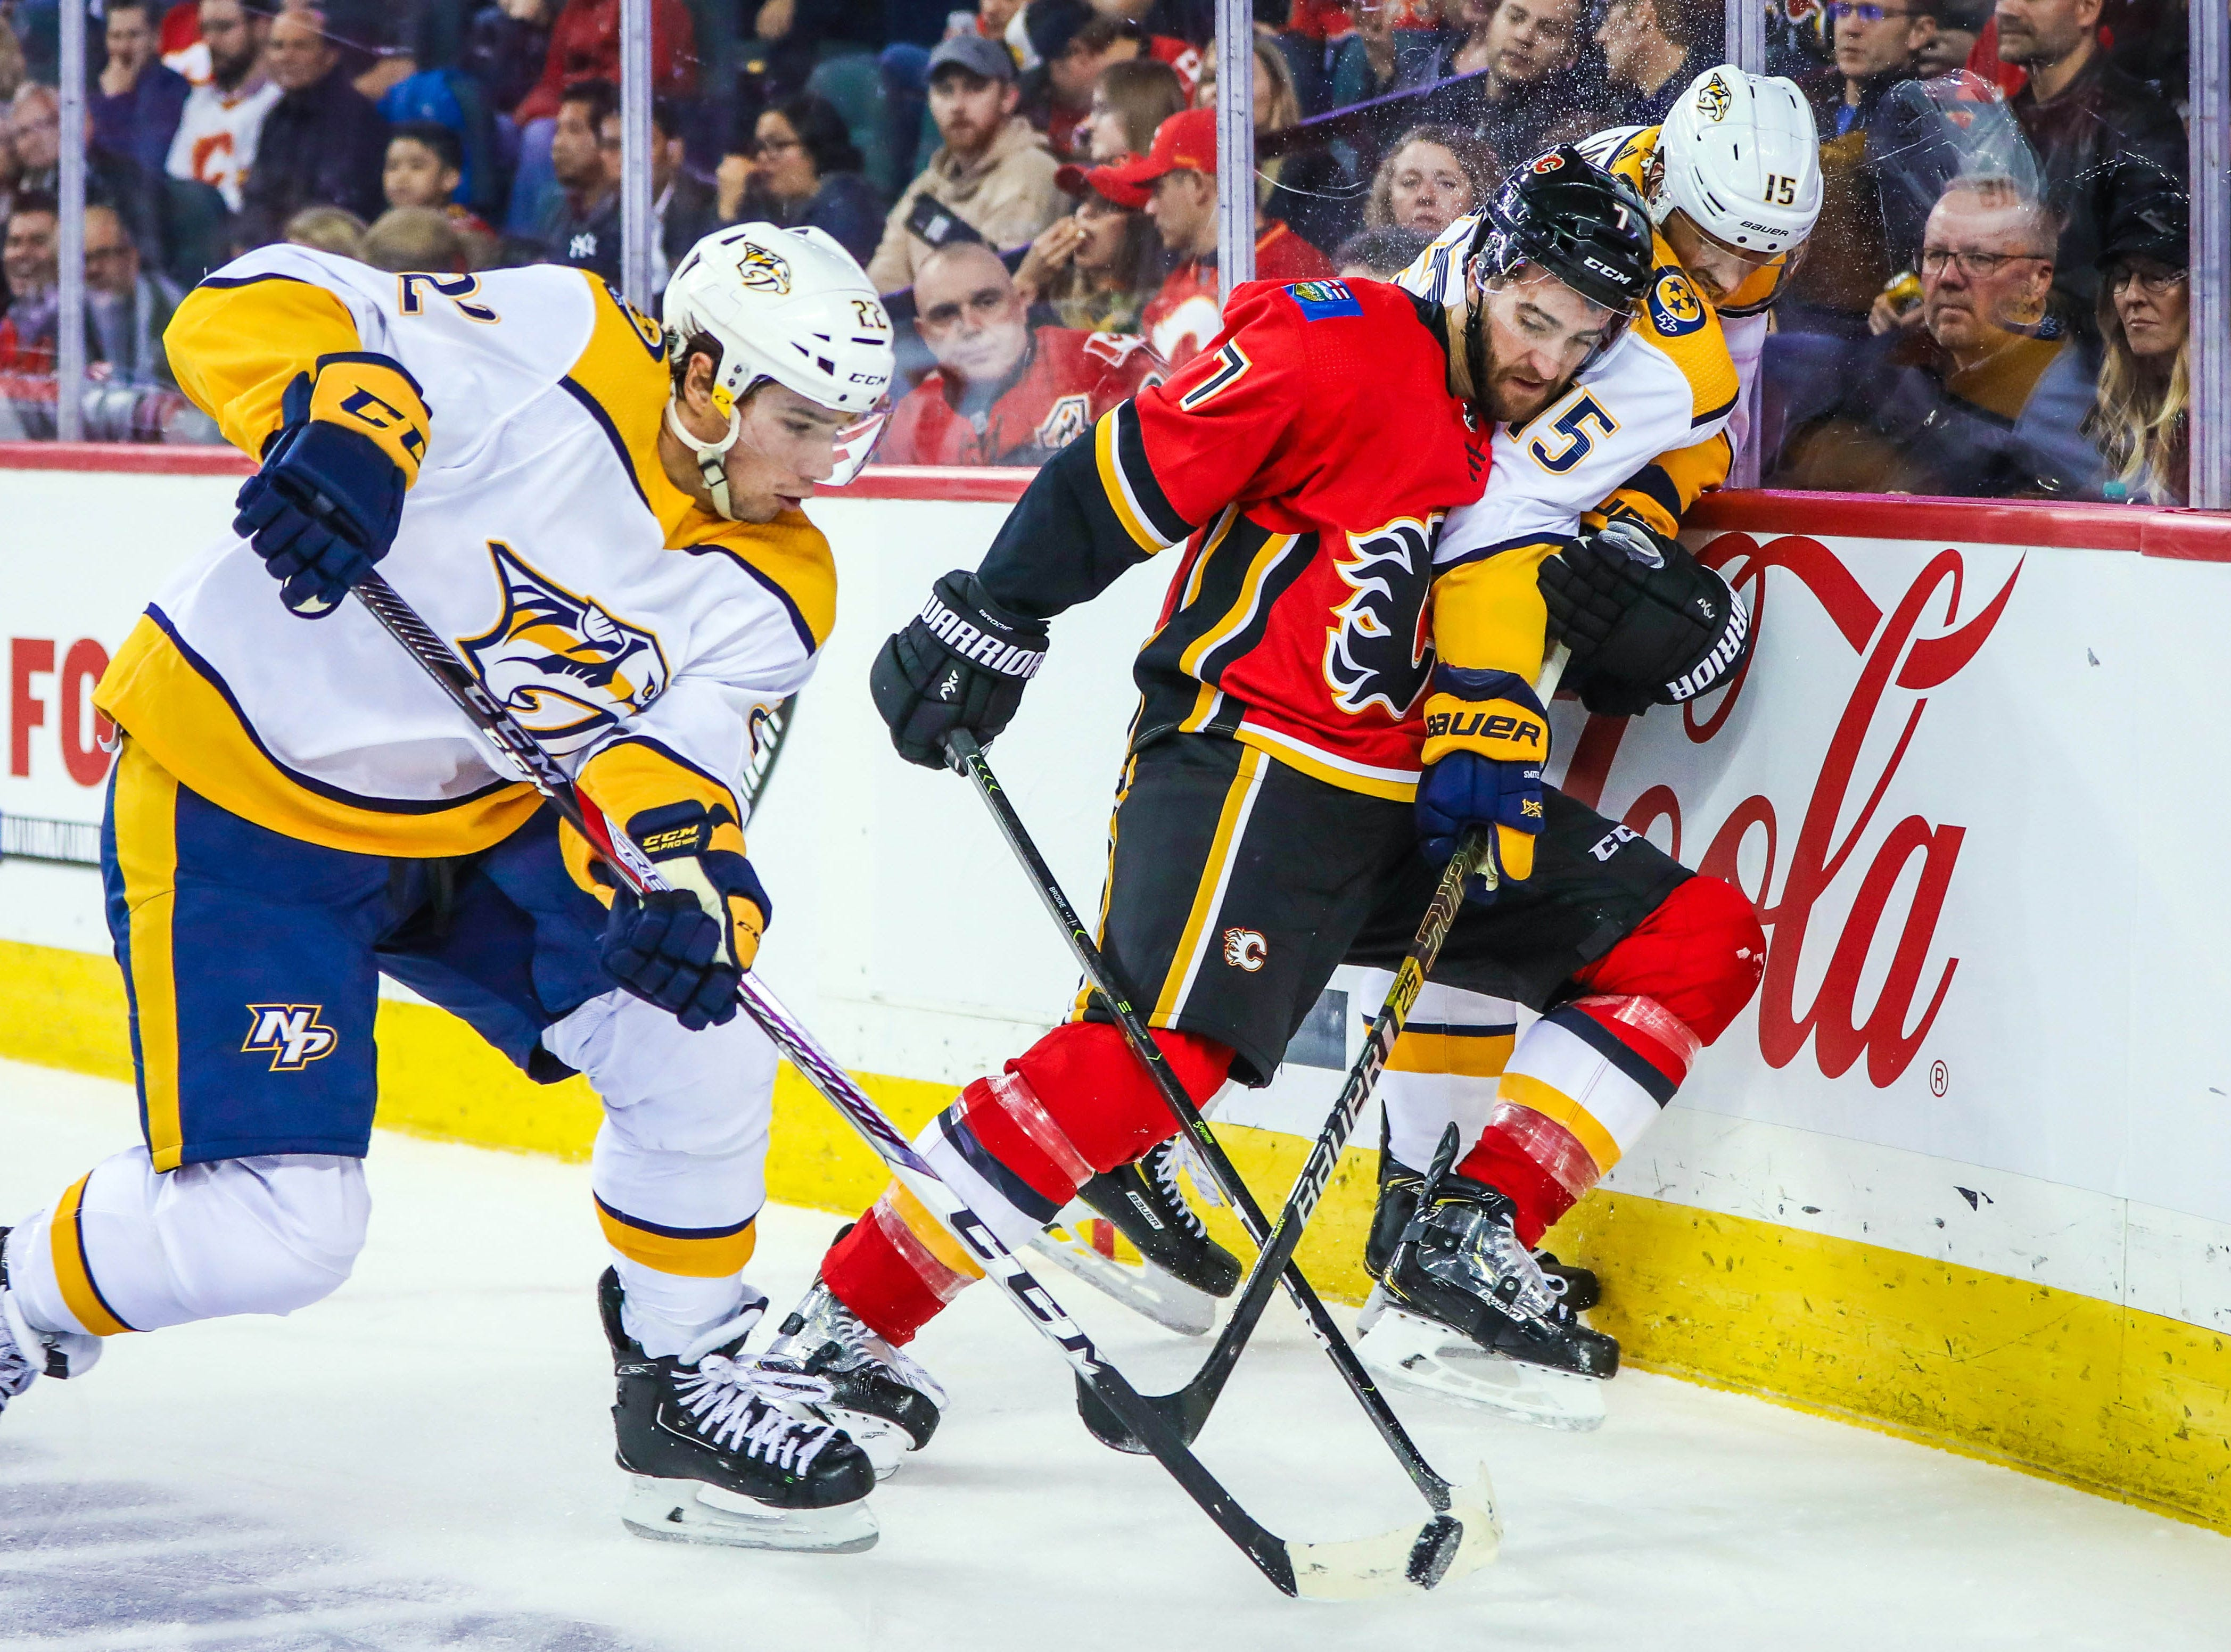 Oct. 19: Calgary Flames defenseman TJ Brodie (7) and Nashville Predators right wing Craig Smith (15) battle for the puck during the second period at Scotiabank Saddledome.